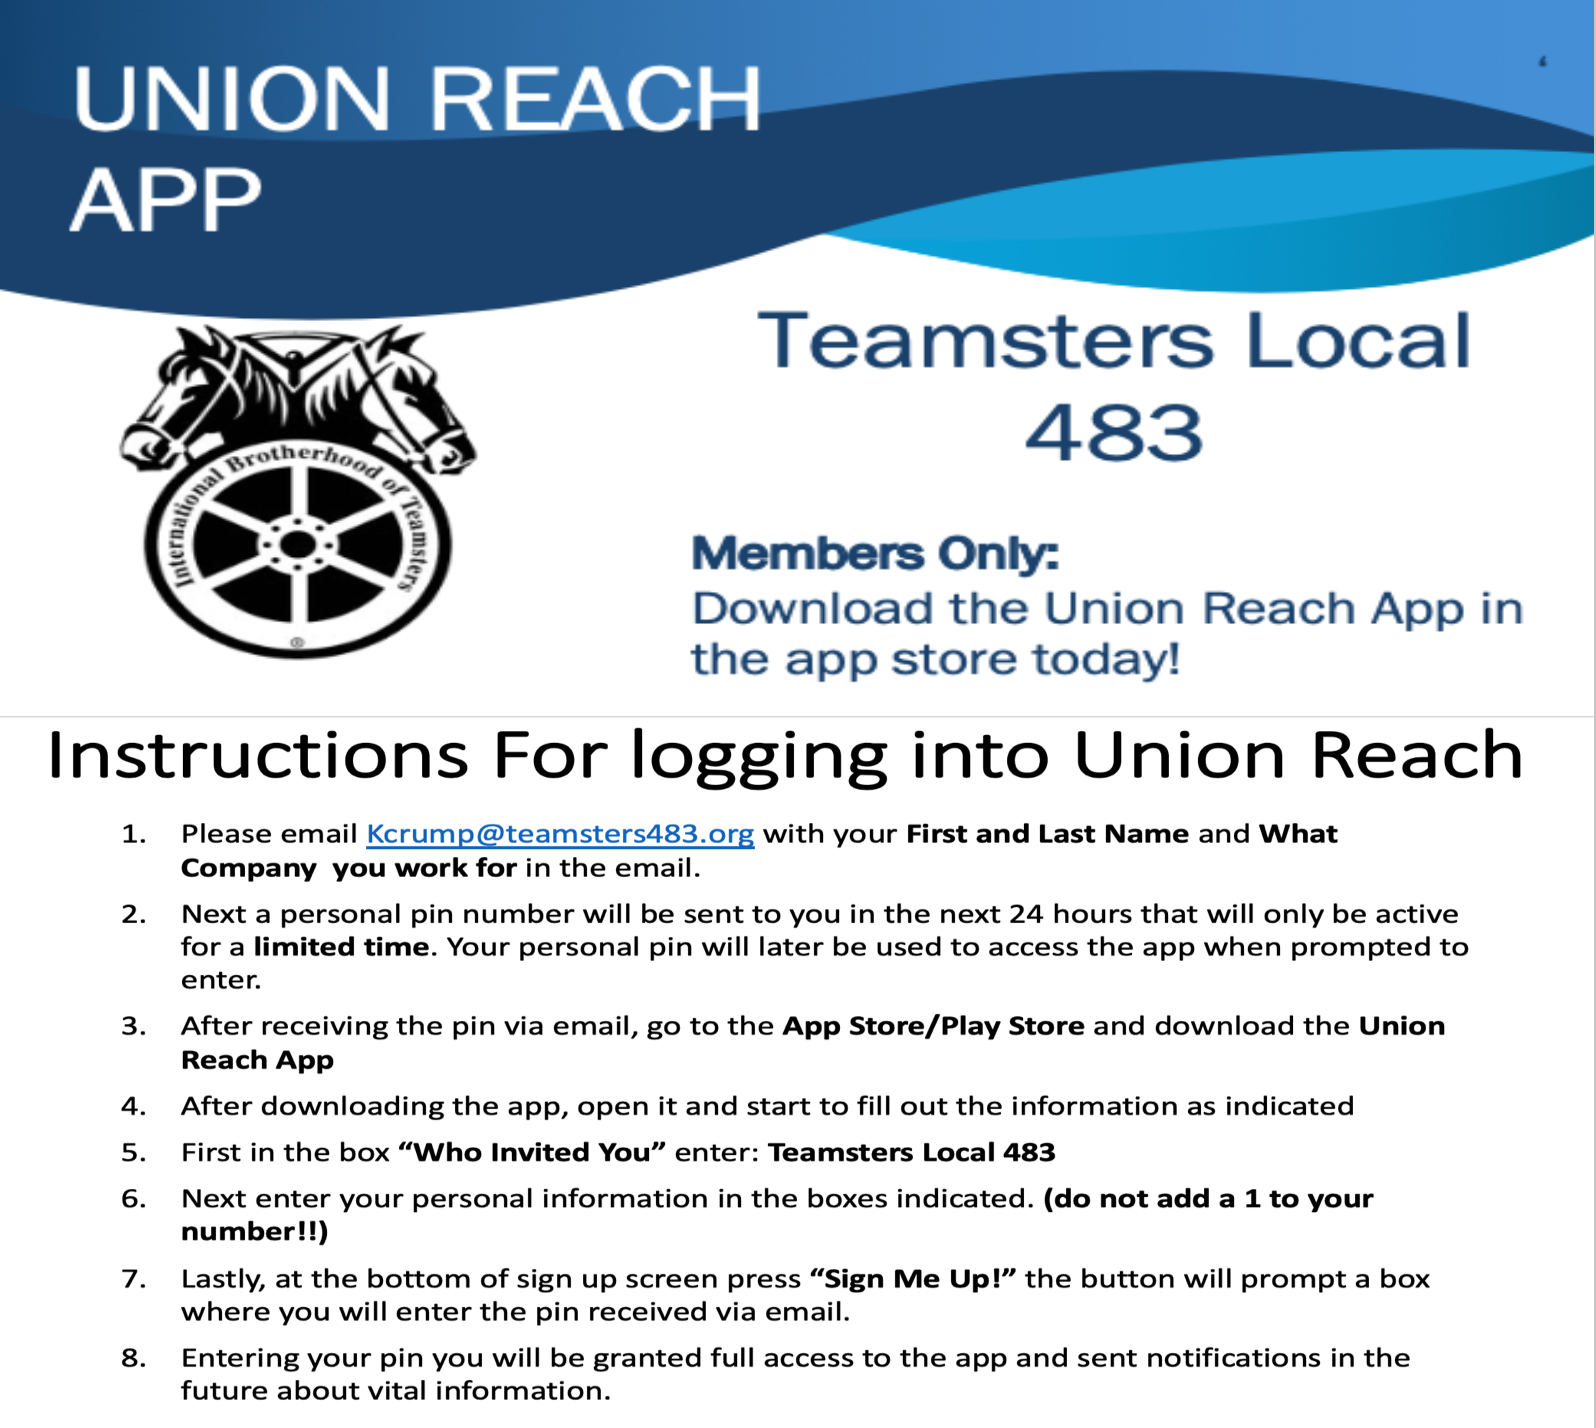 Teamsters Local 483